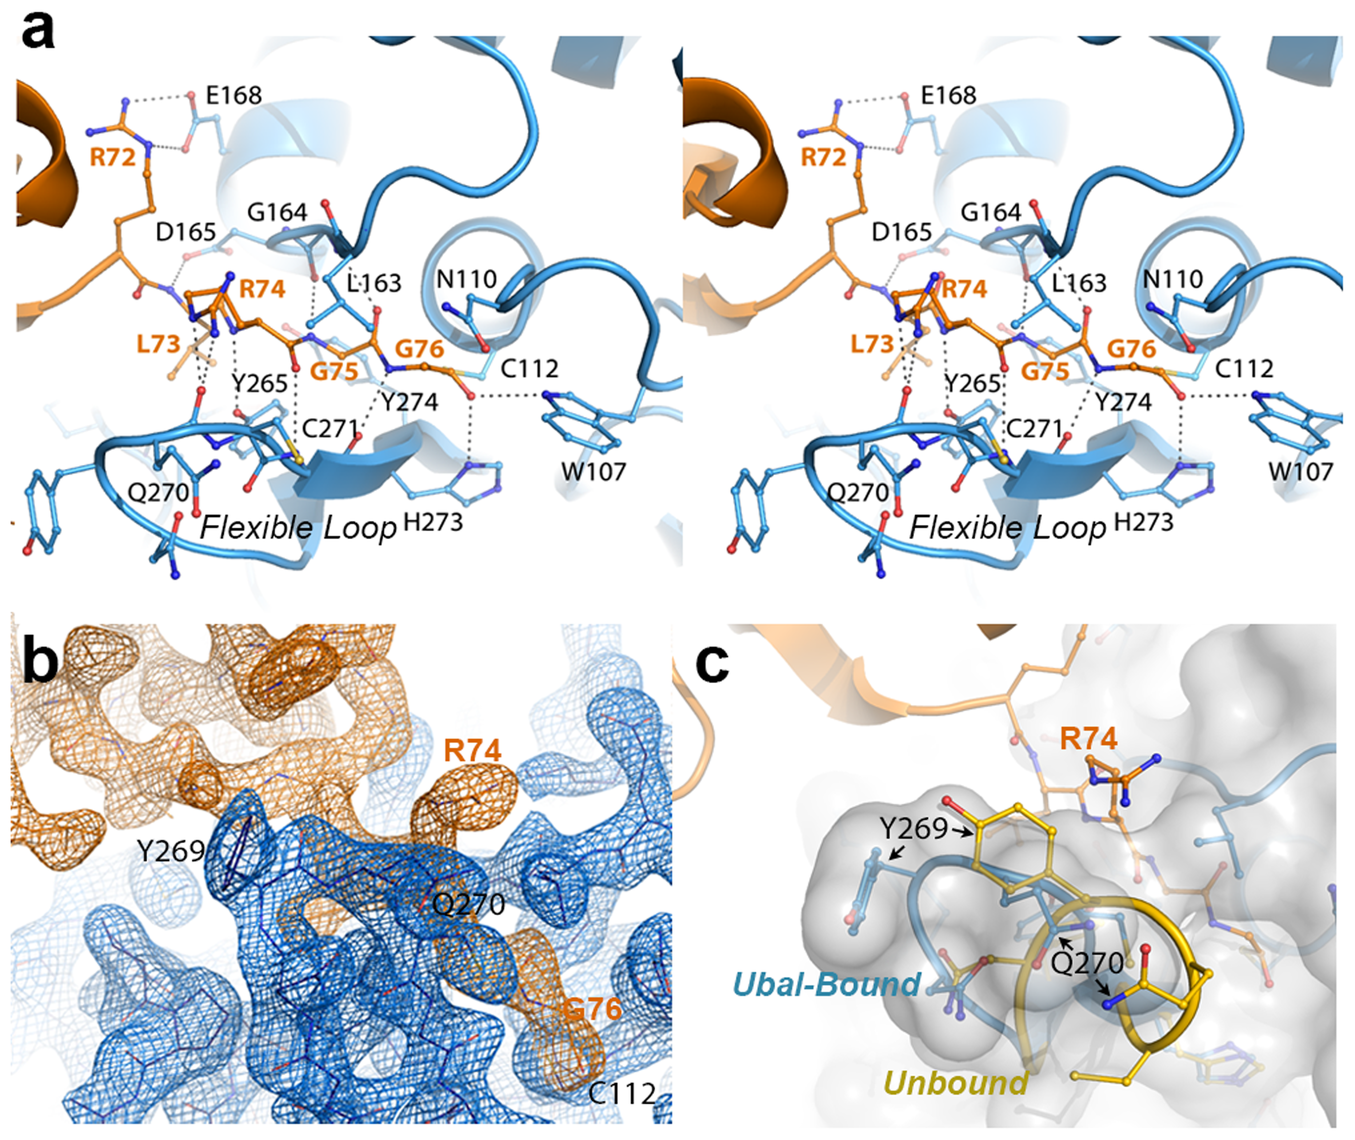 The crystal structure of the PLpro-Ubal complex reveals a dense hydrogen-bonding pattern between the active site of PLpro and the C-terminus of ubiquitin.